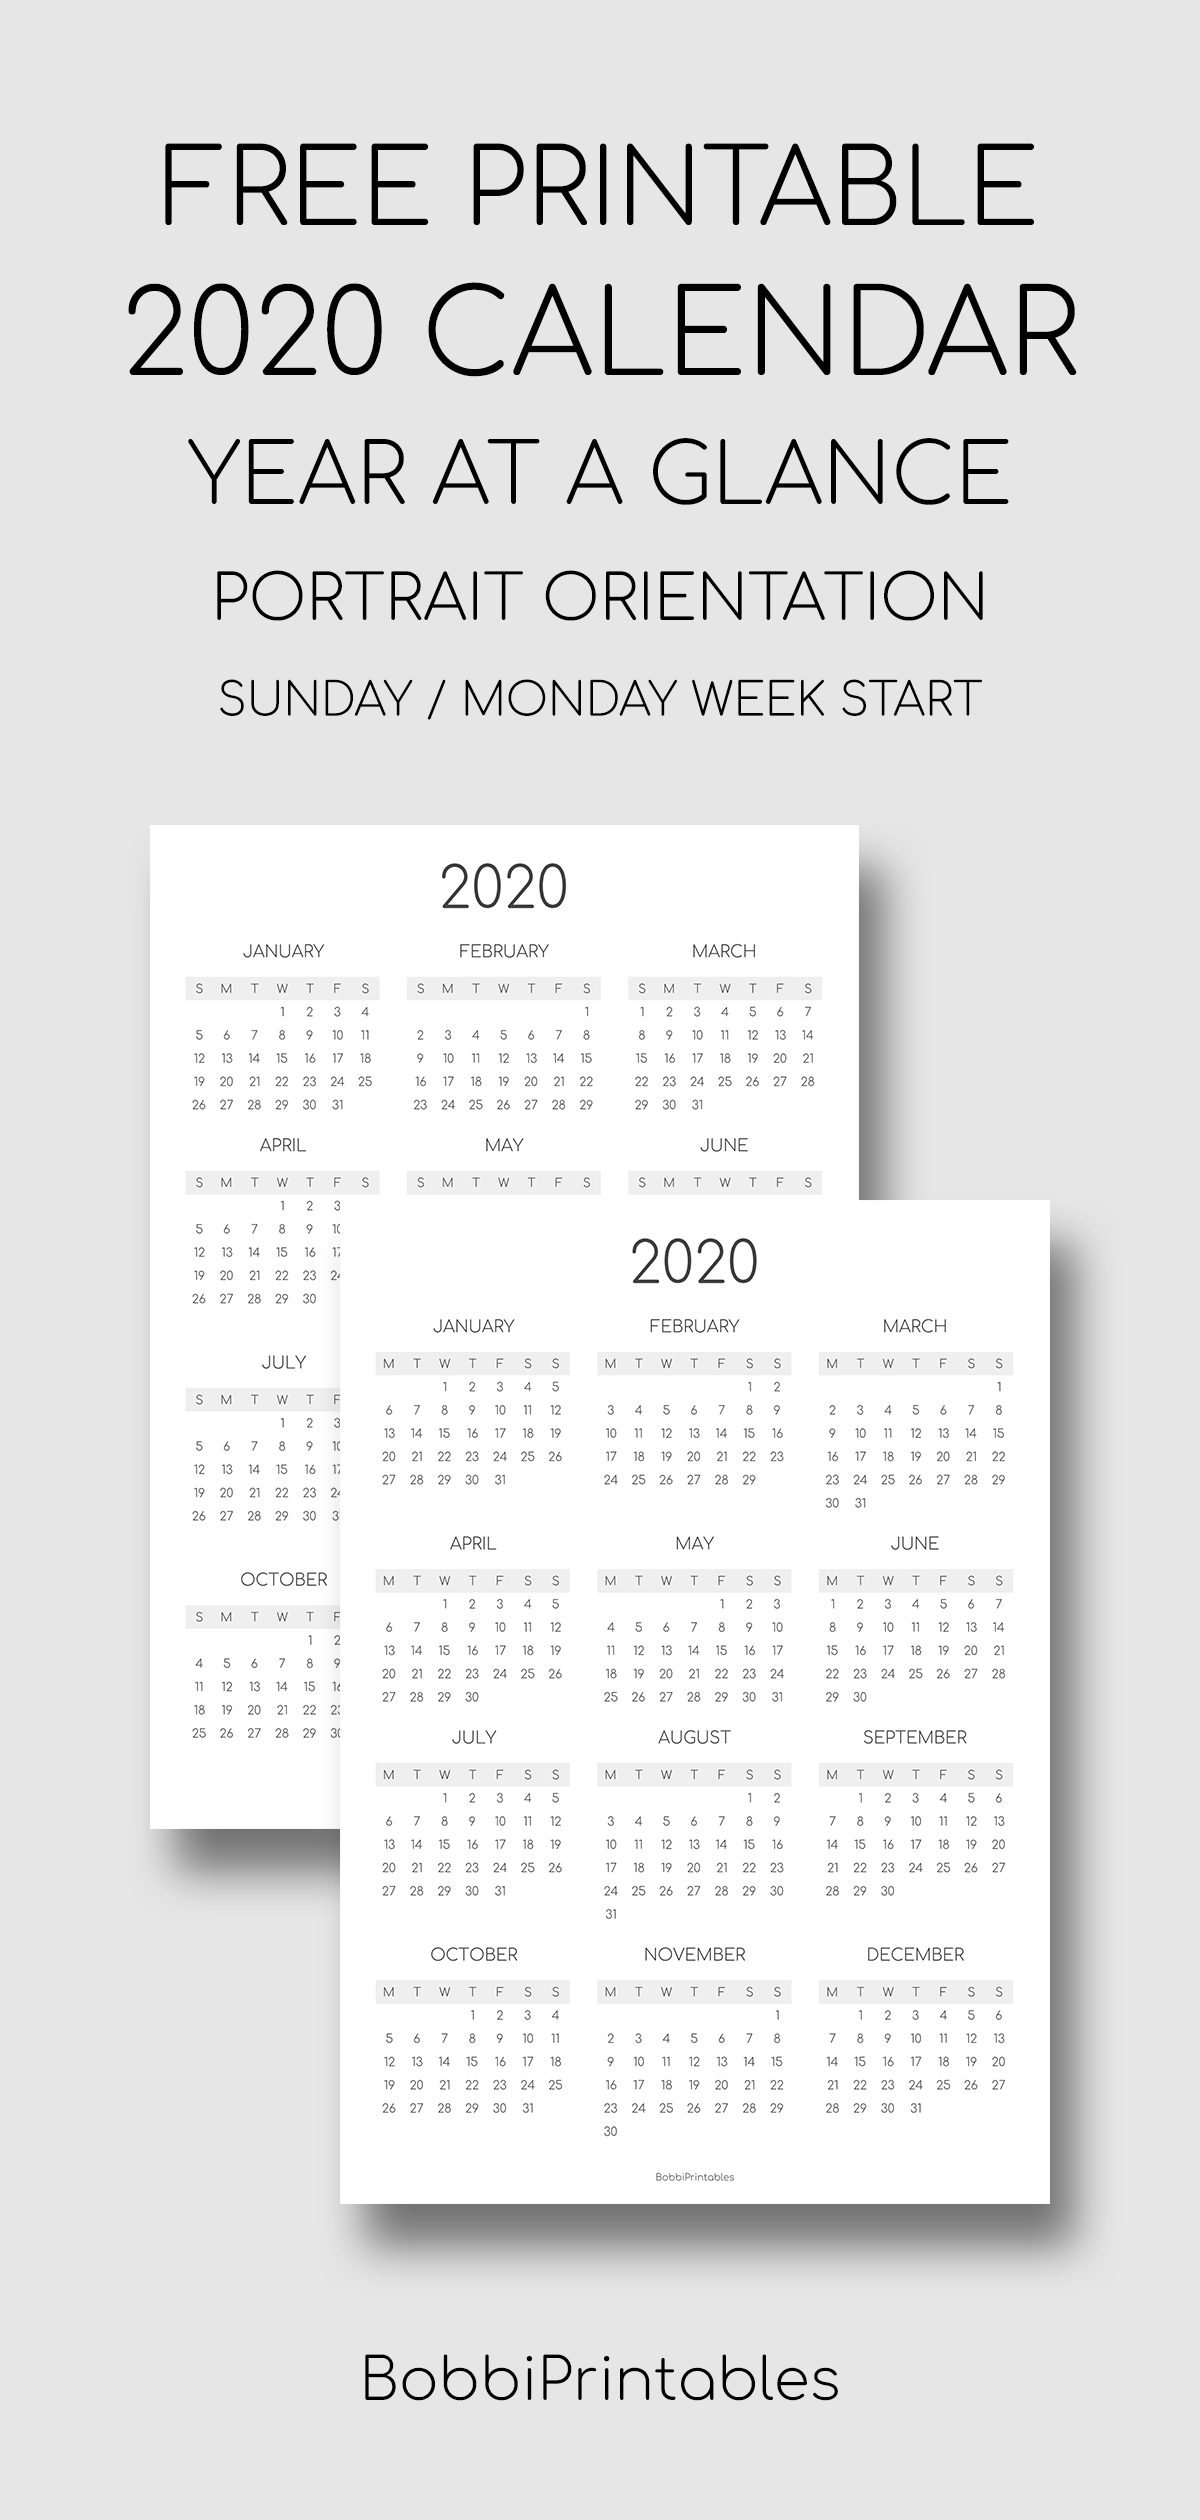 Printable 2020 Year At A Glance Calendar - Portrait throughout Free Printable Year At A Glance 2020 Calendar